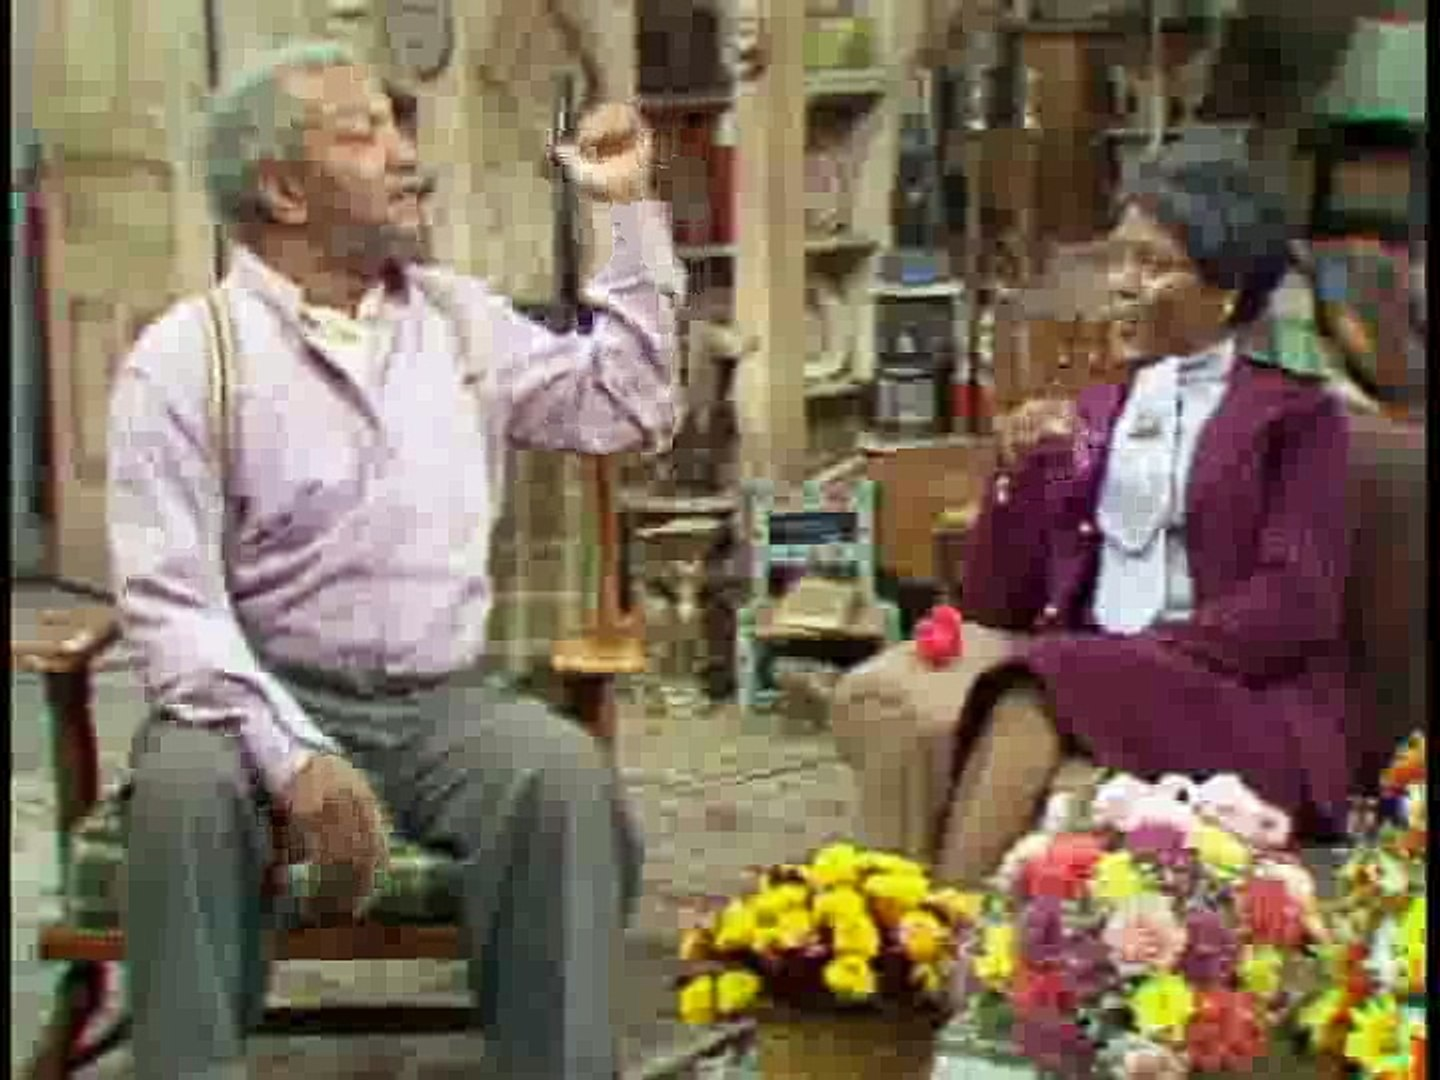 Sanford And Son S02E13 Sanford And Son And Sister Makes Three